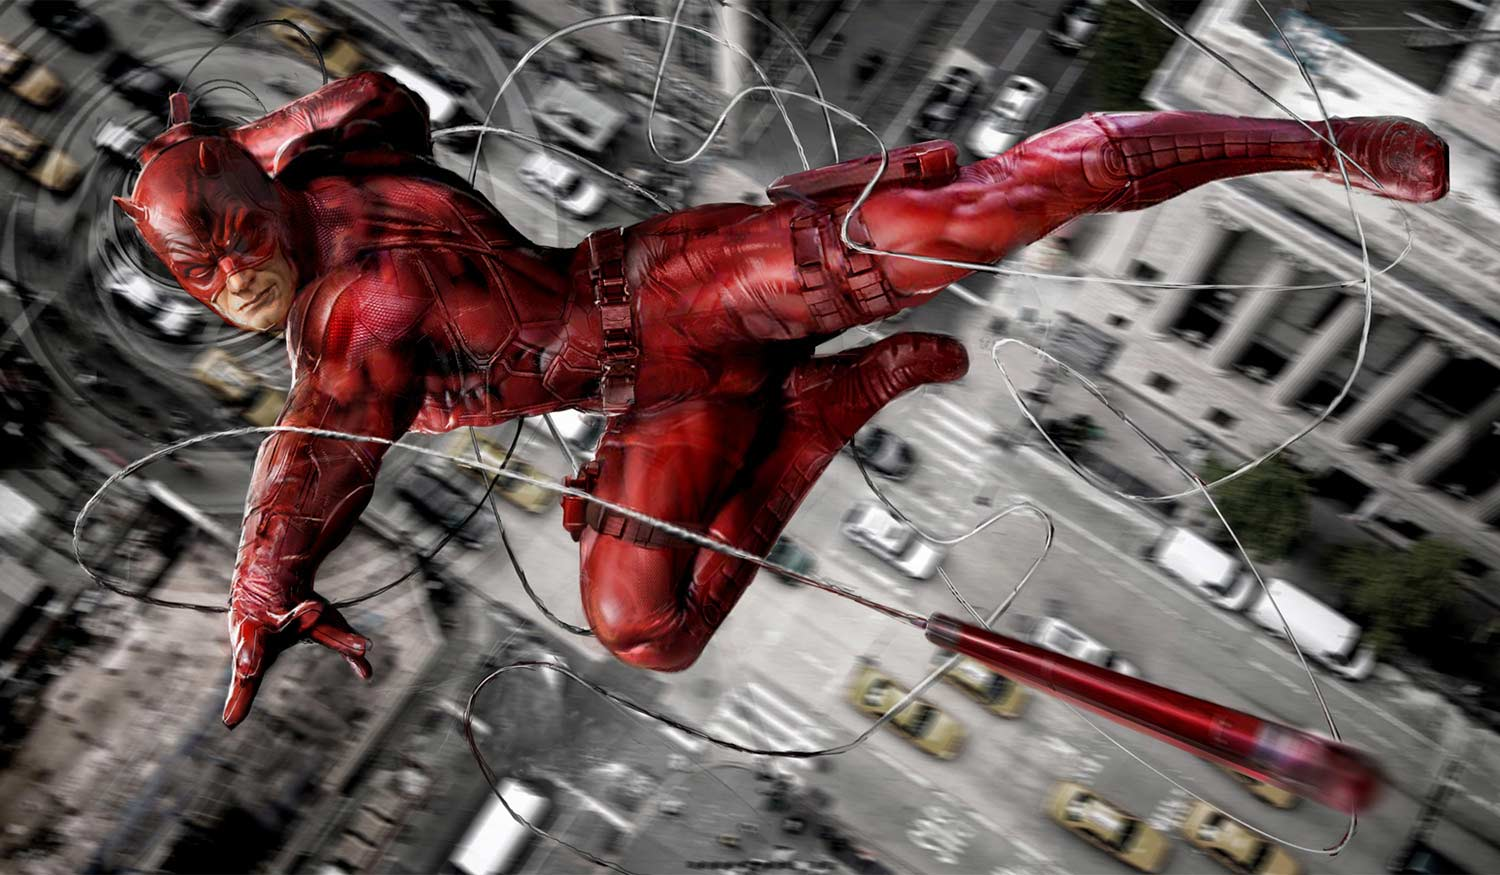 Daredevil Man Without Fear By Techgnotic On DeviantArt